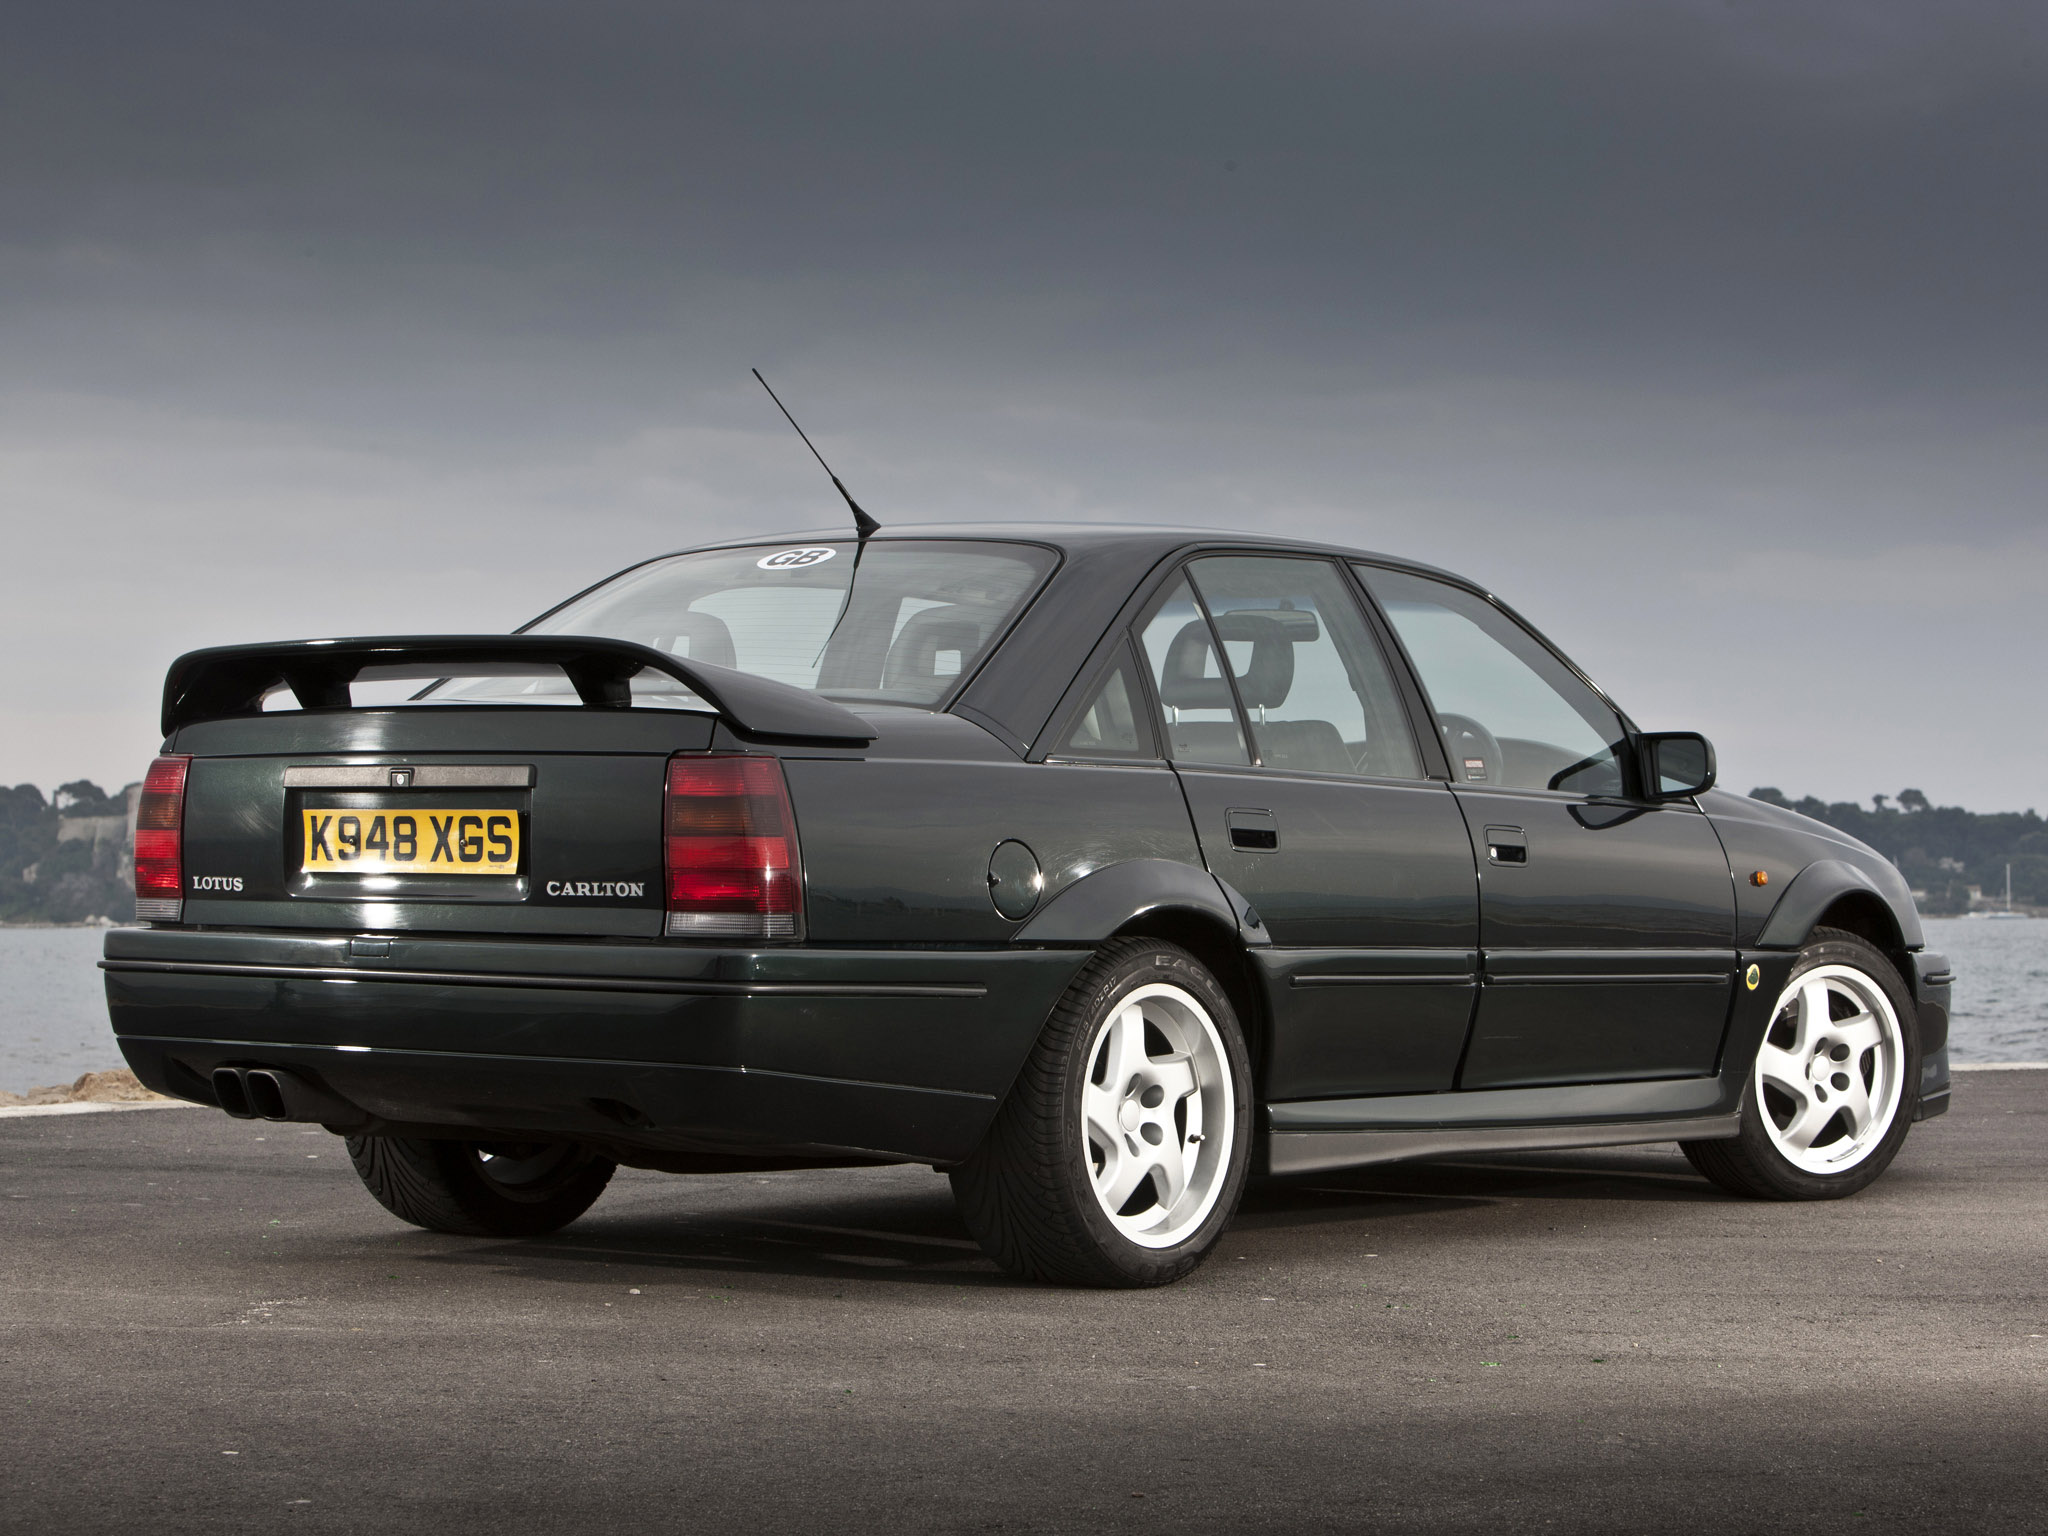 vauxhall lotus carlton 1990 1992 vauxhall lotus carlton 1990 1992 photo 05 car in pictures. Black Bedroom Furniture Sets. Home Design Ideas